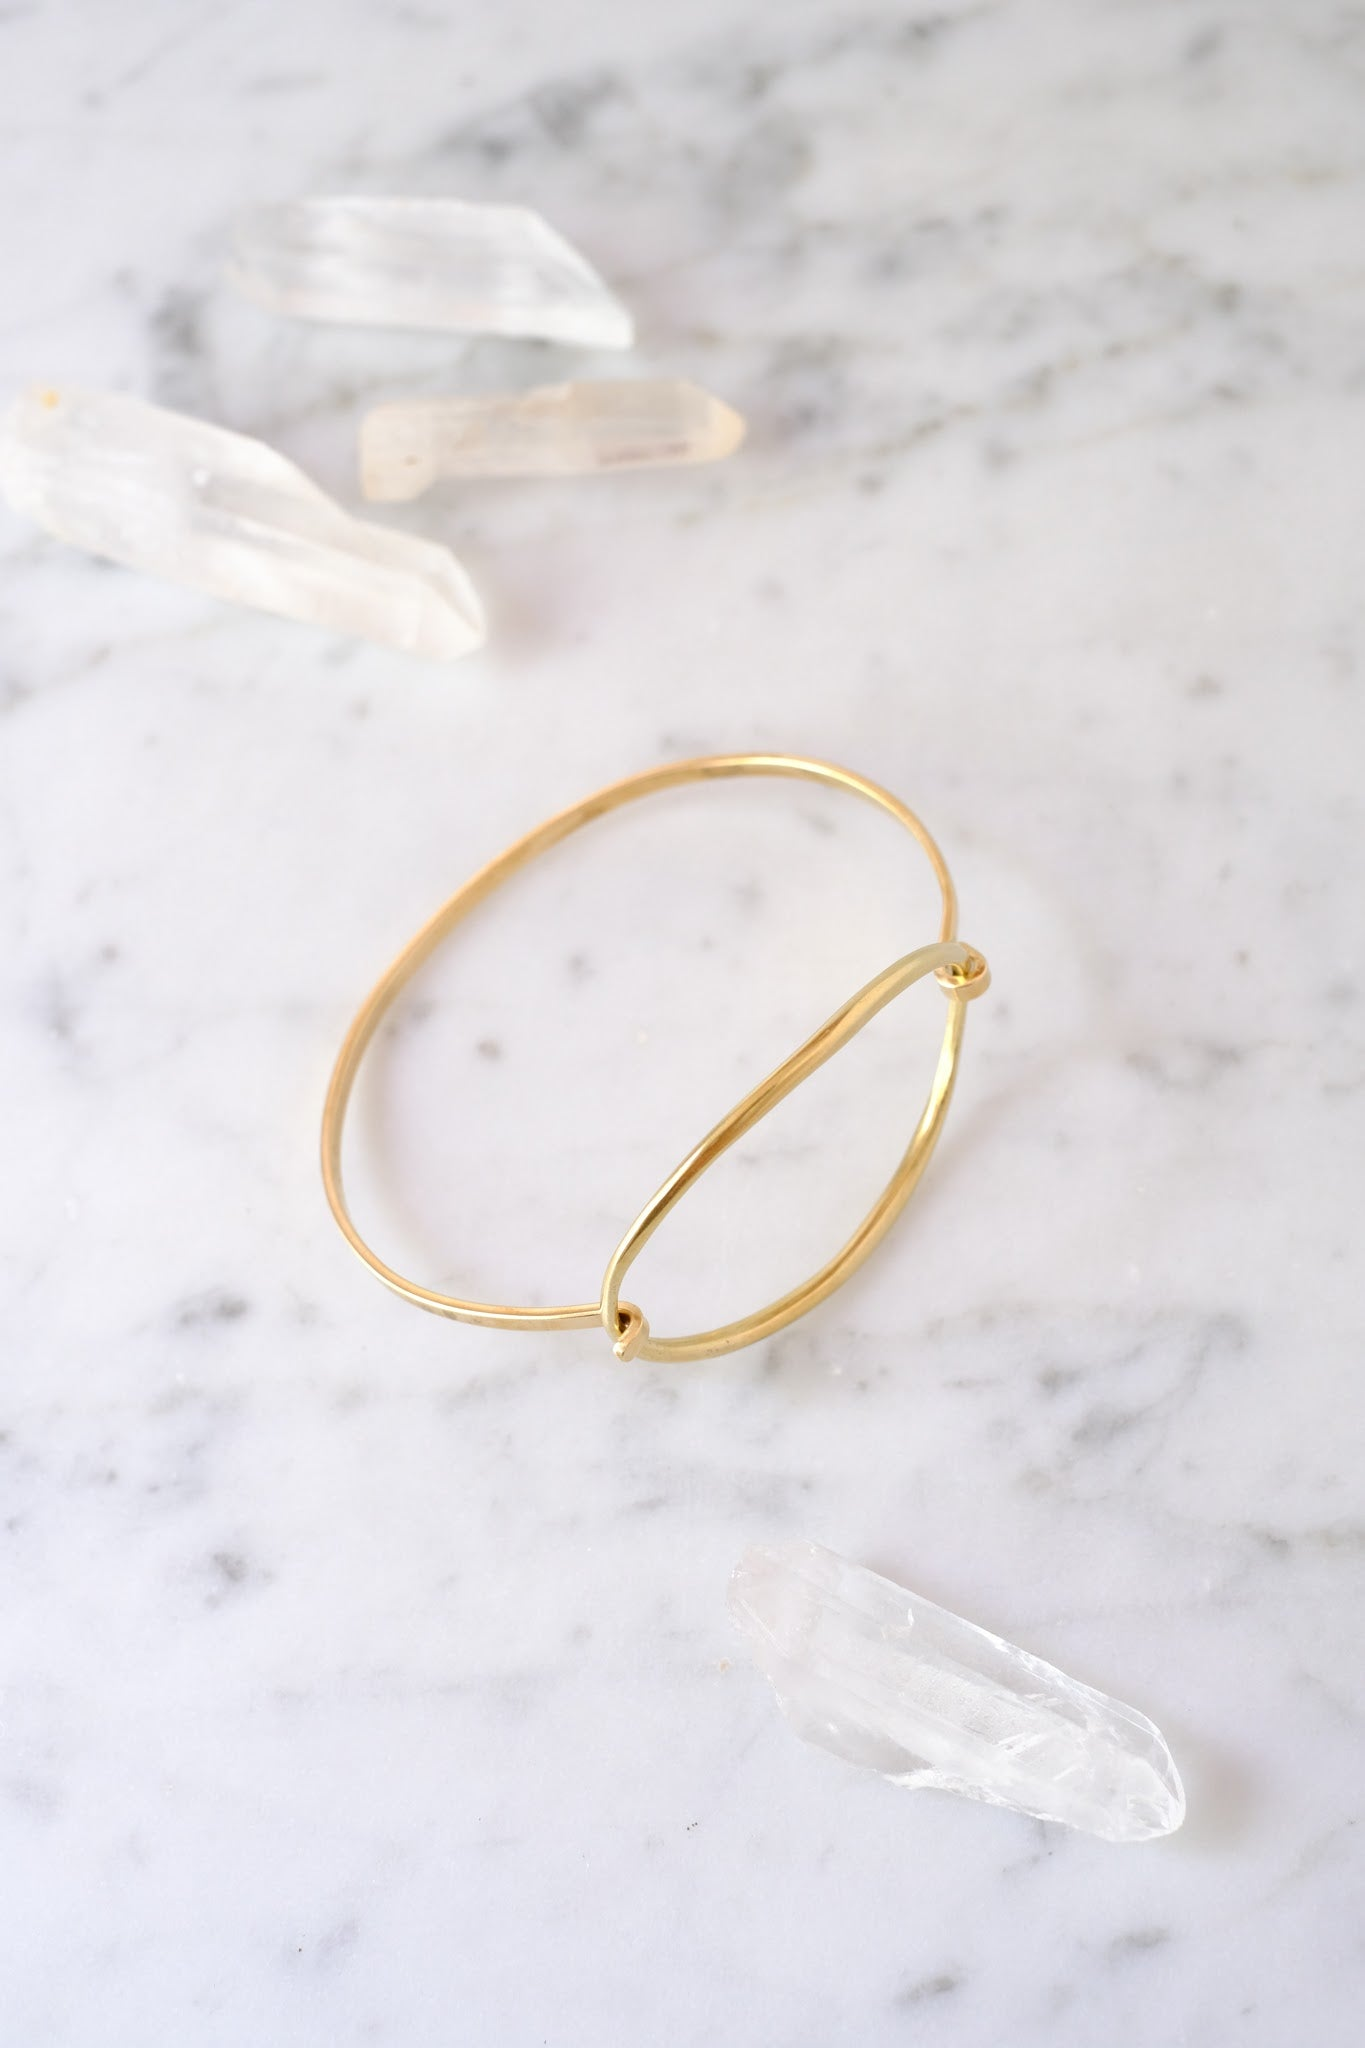 K/ller :: Bracelet, Ellipse Tension Cuff, Brass